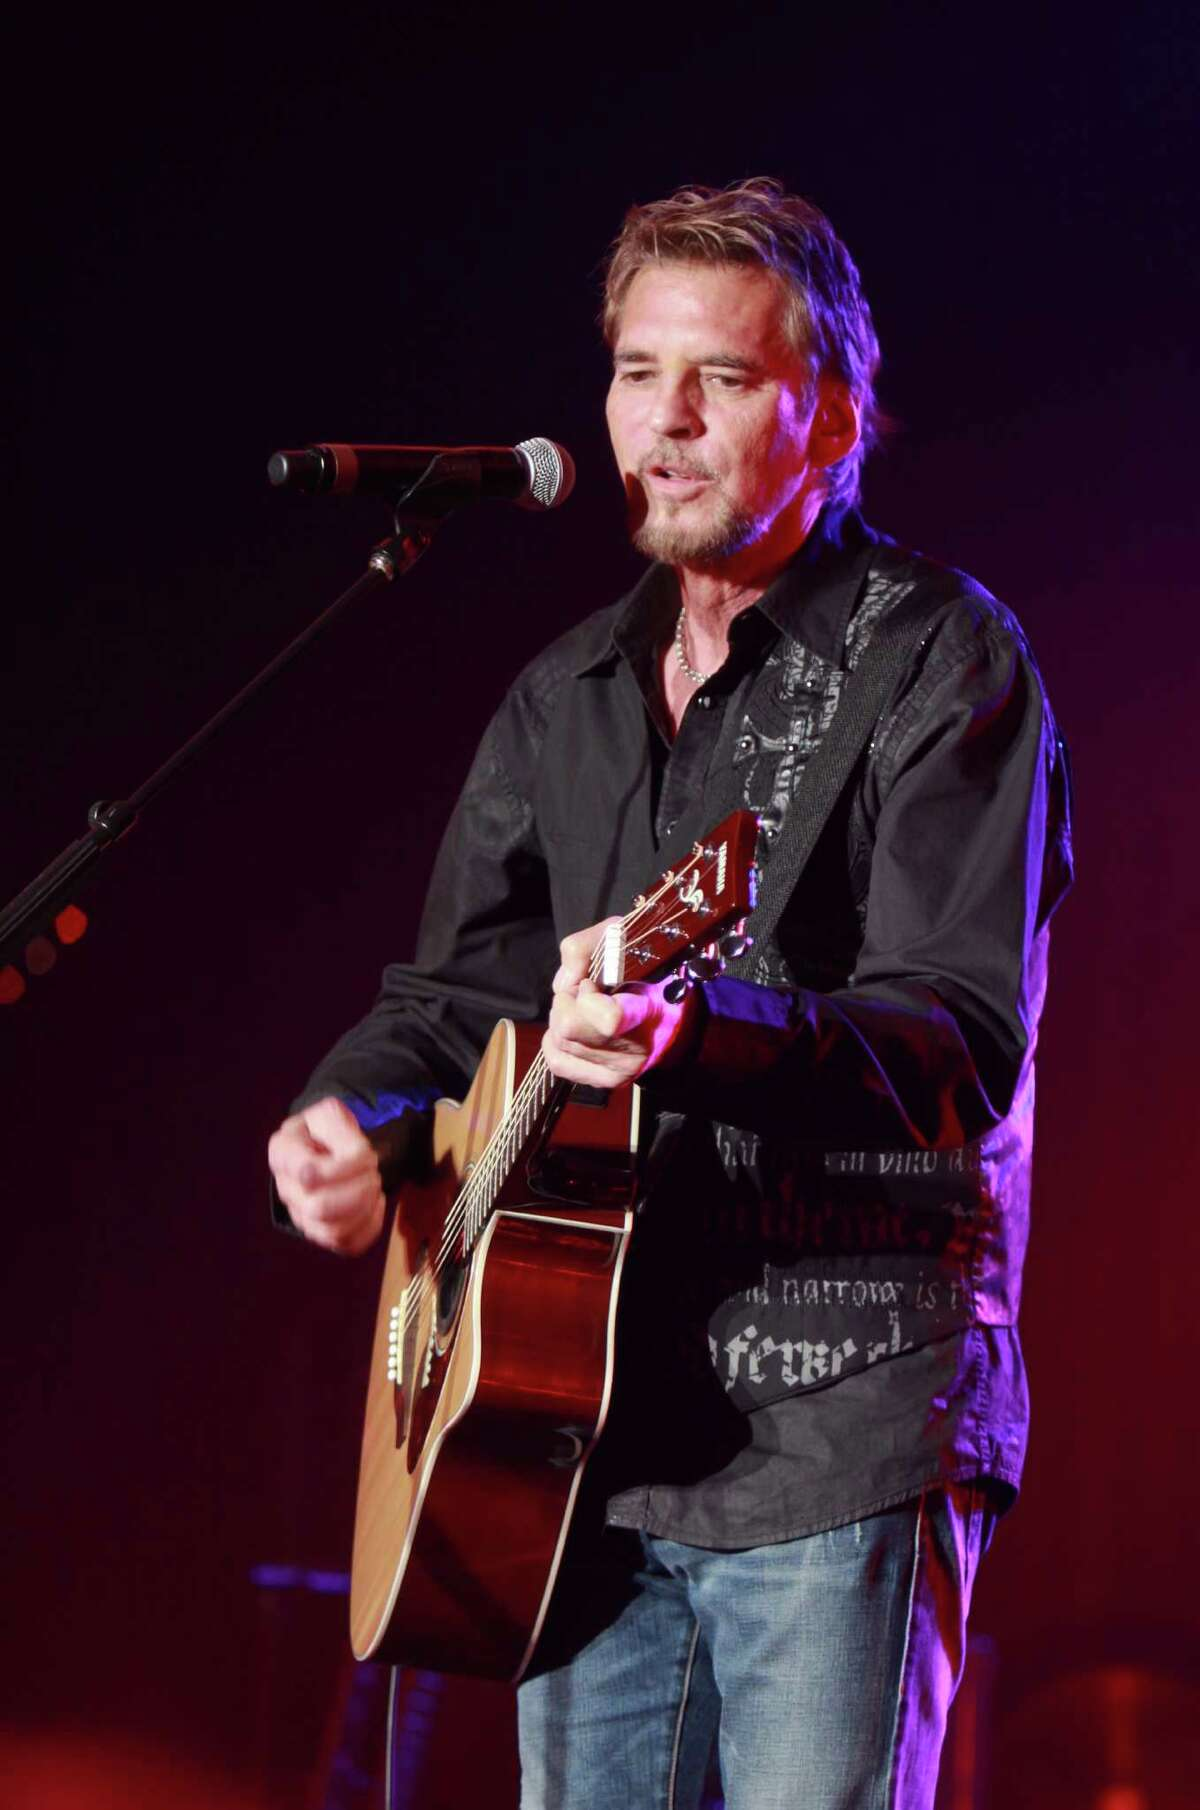 Kenny Loggins performs at The Stehlin gala.